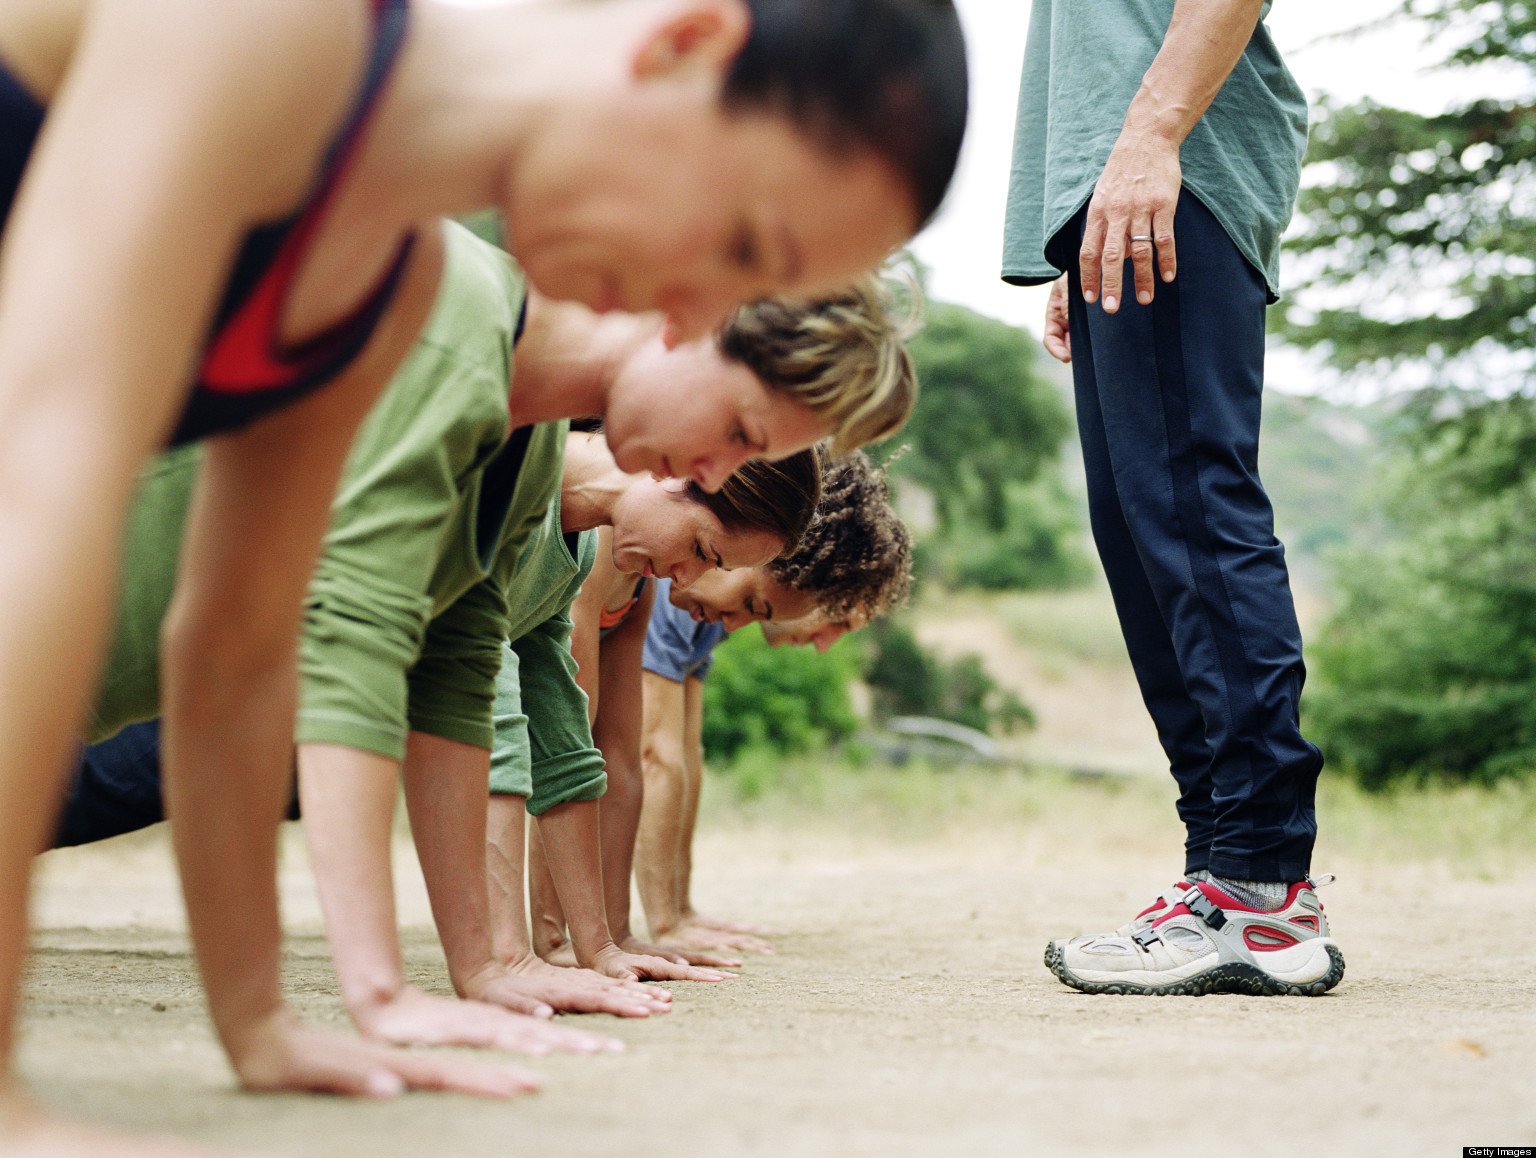 Full Body Boot Camp Workout Group Outdoor